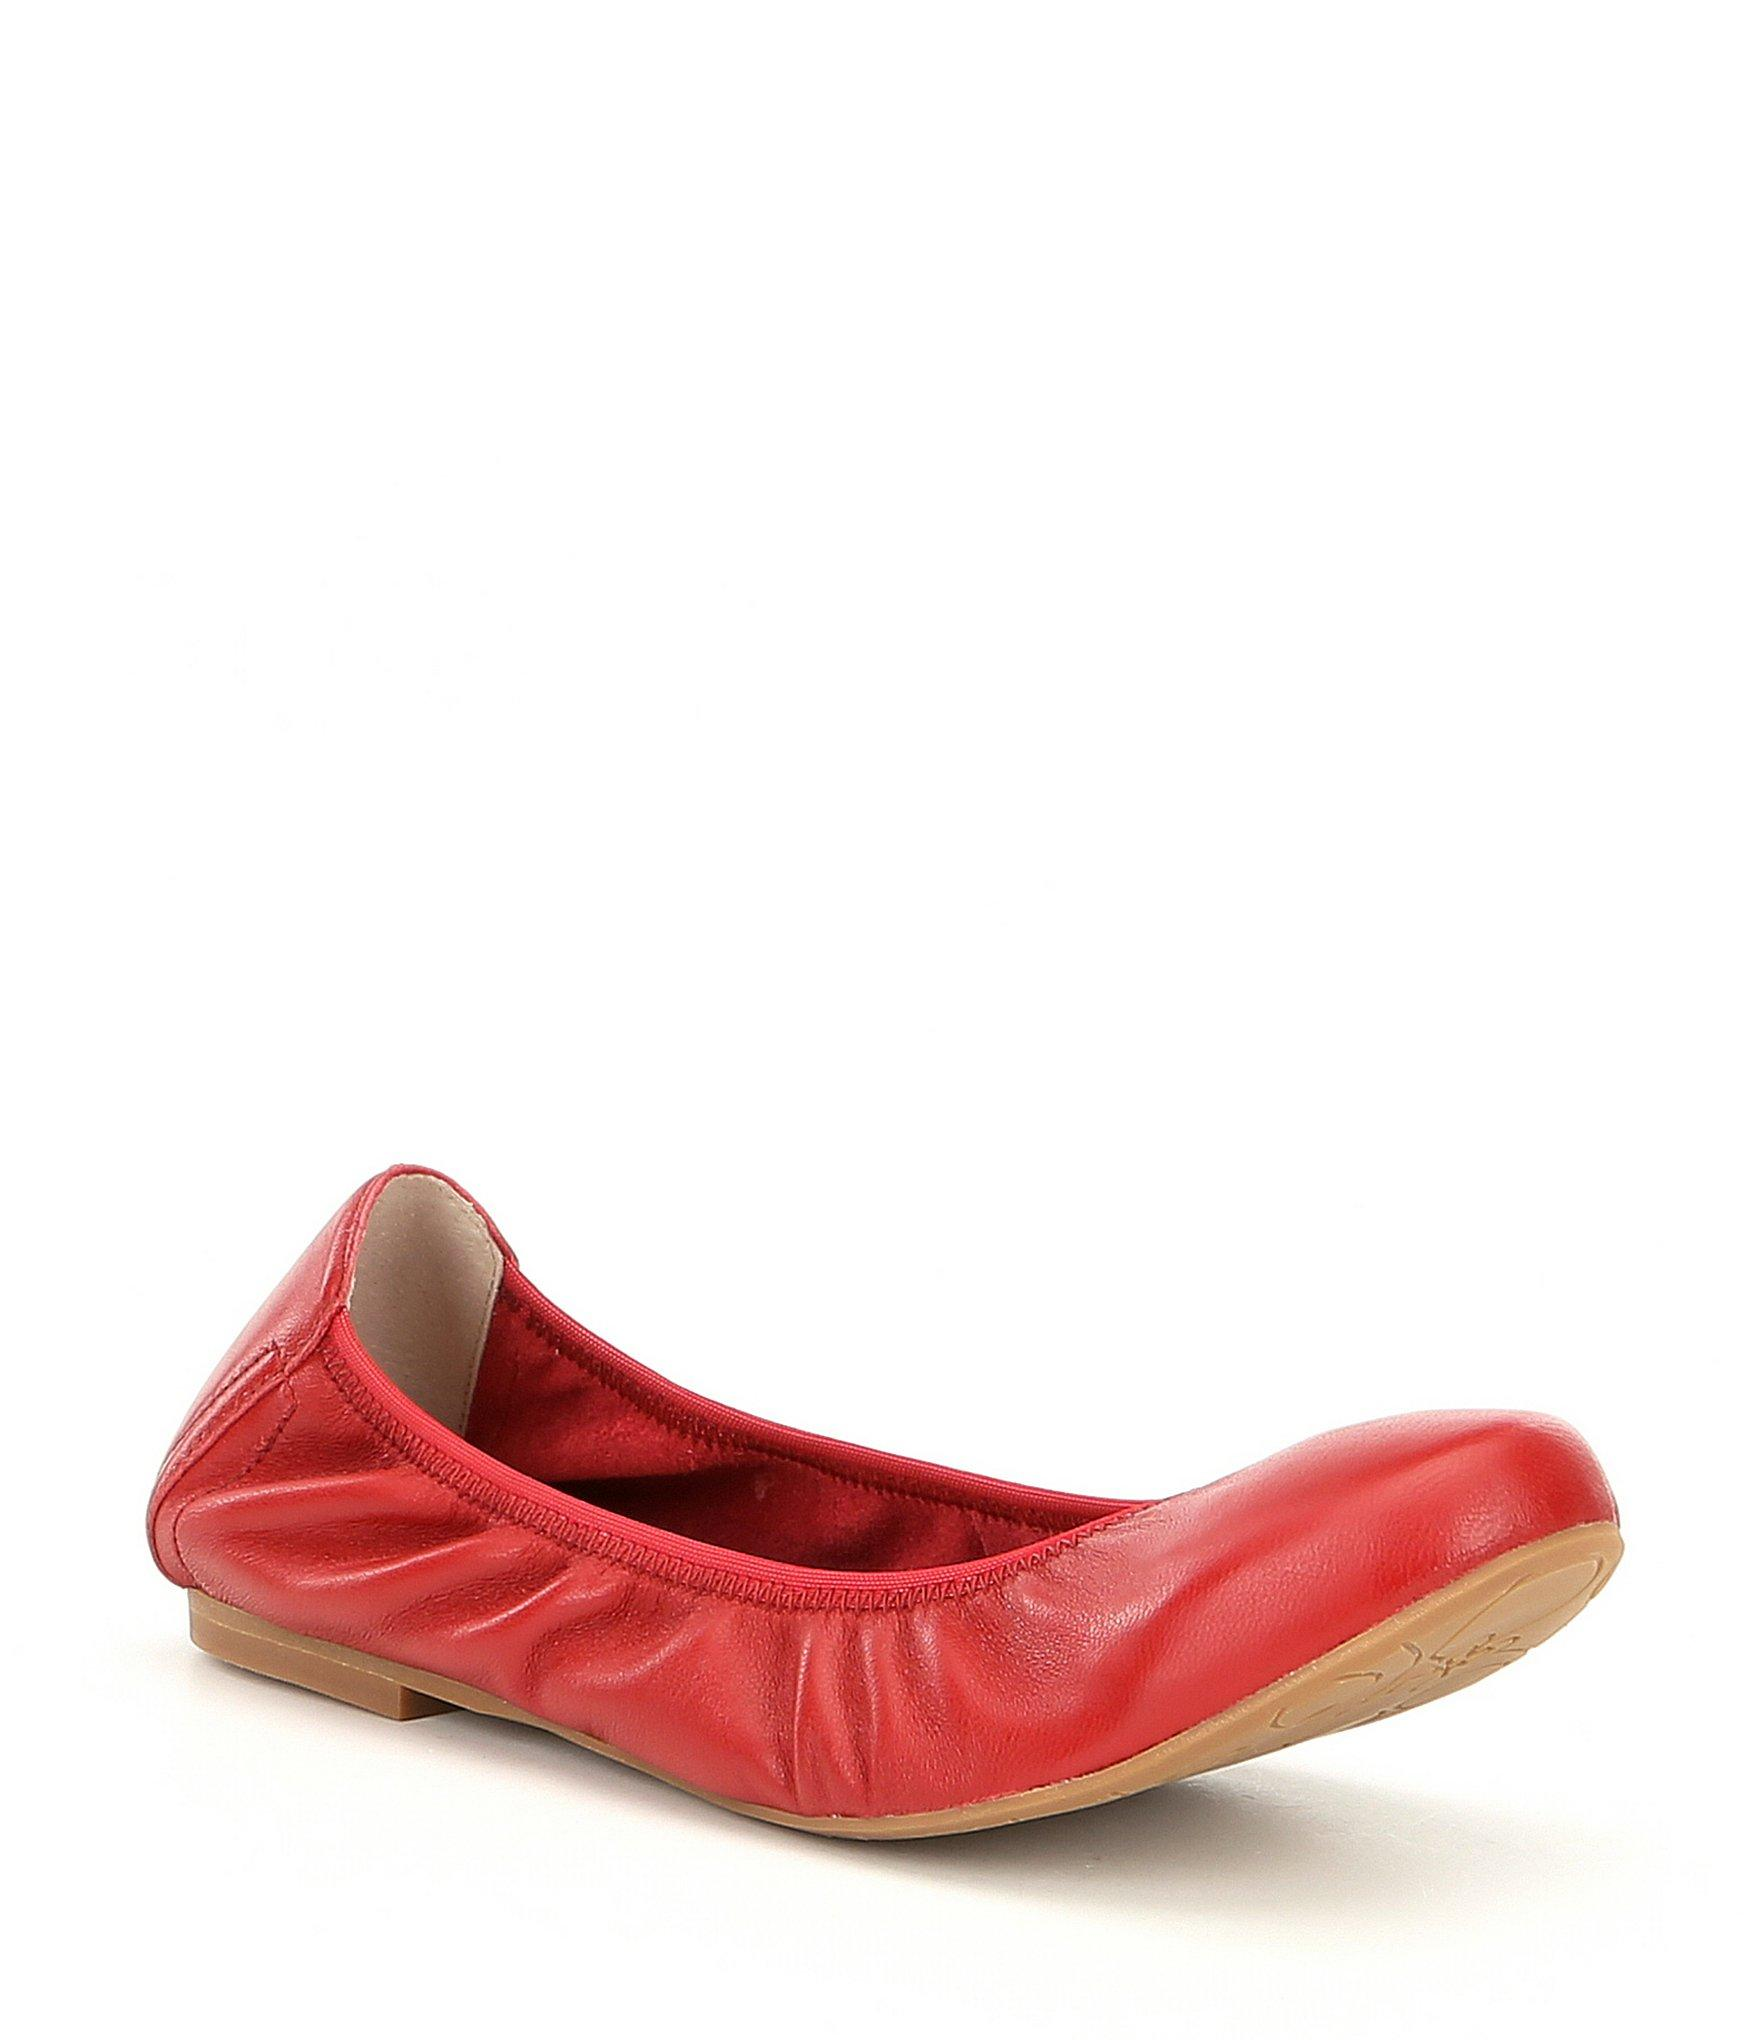 83bc797a5 Blondo Waterproof Becca Ballet Flats in Red - Lyst